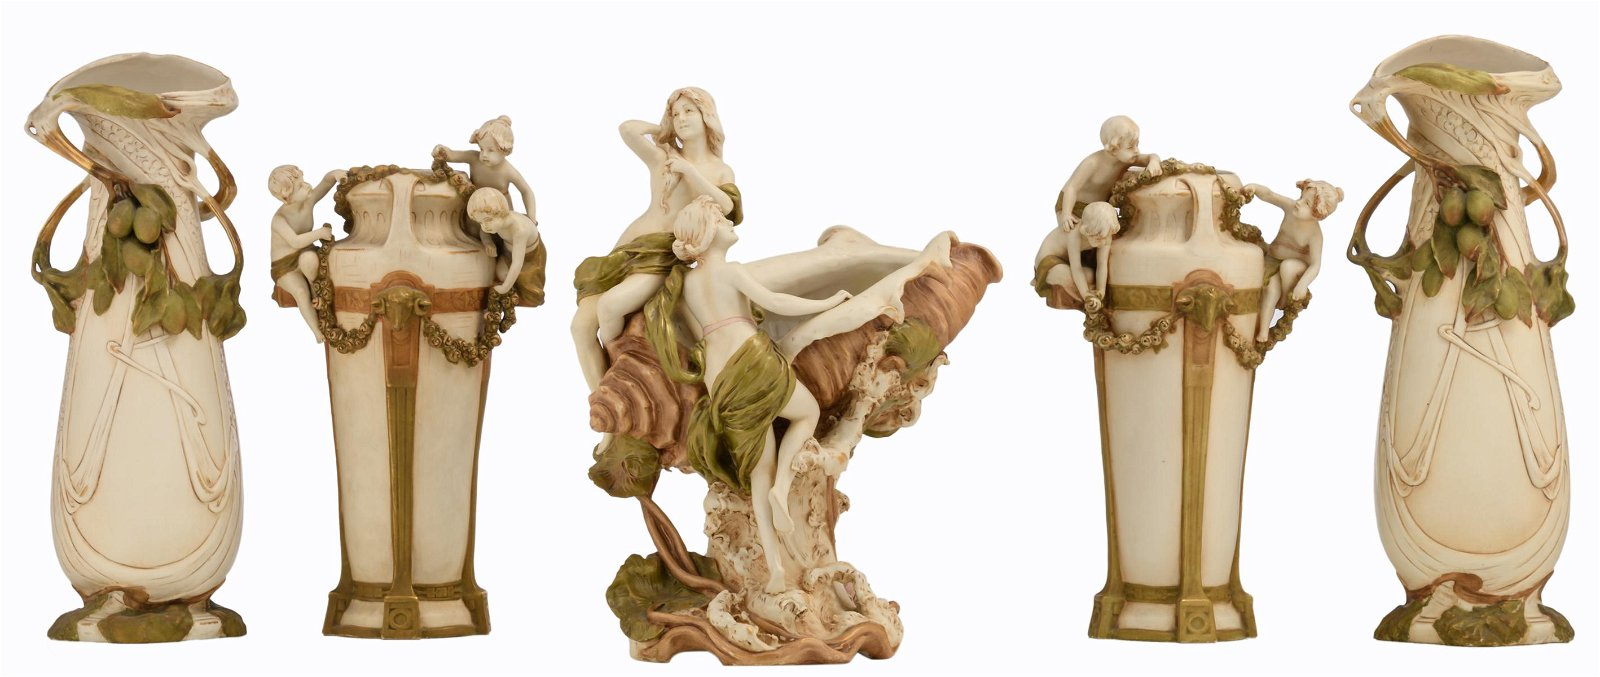 Two pairs of Art Nouveau style Royal Dux vases and one